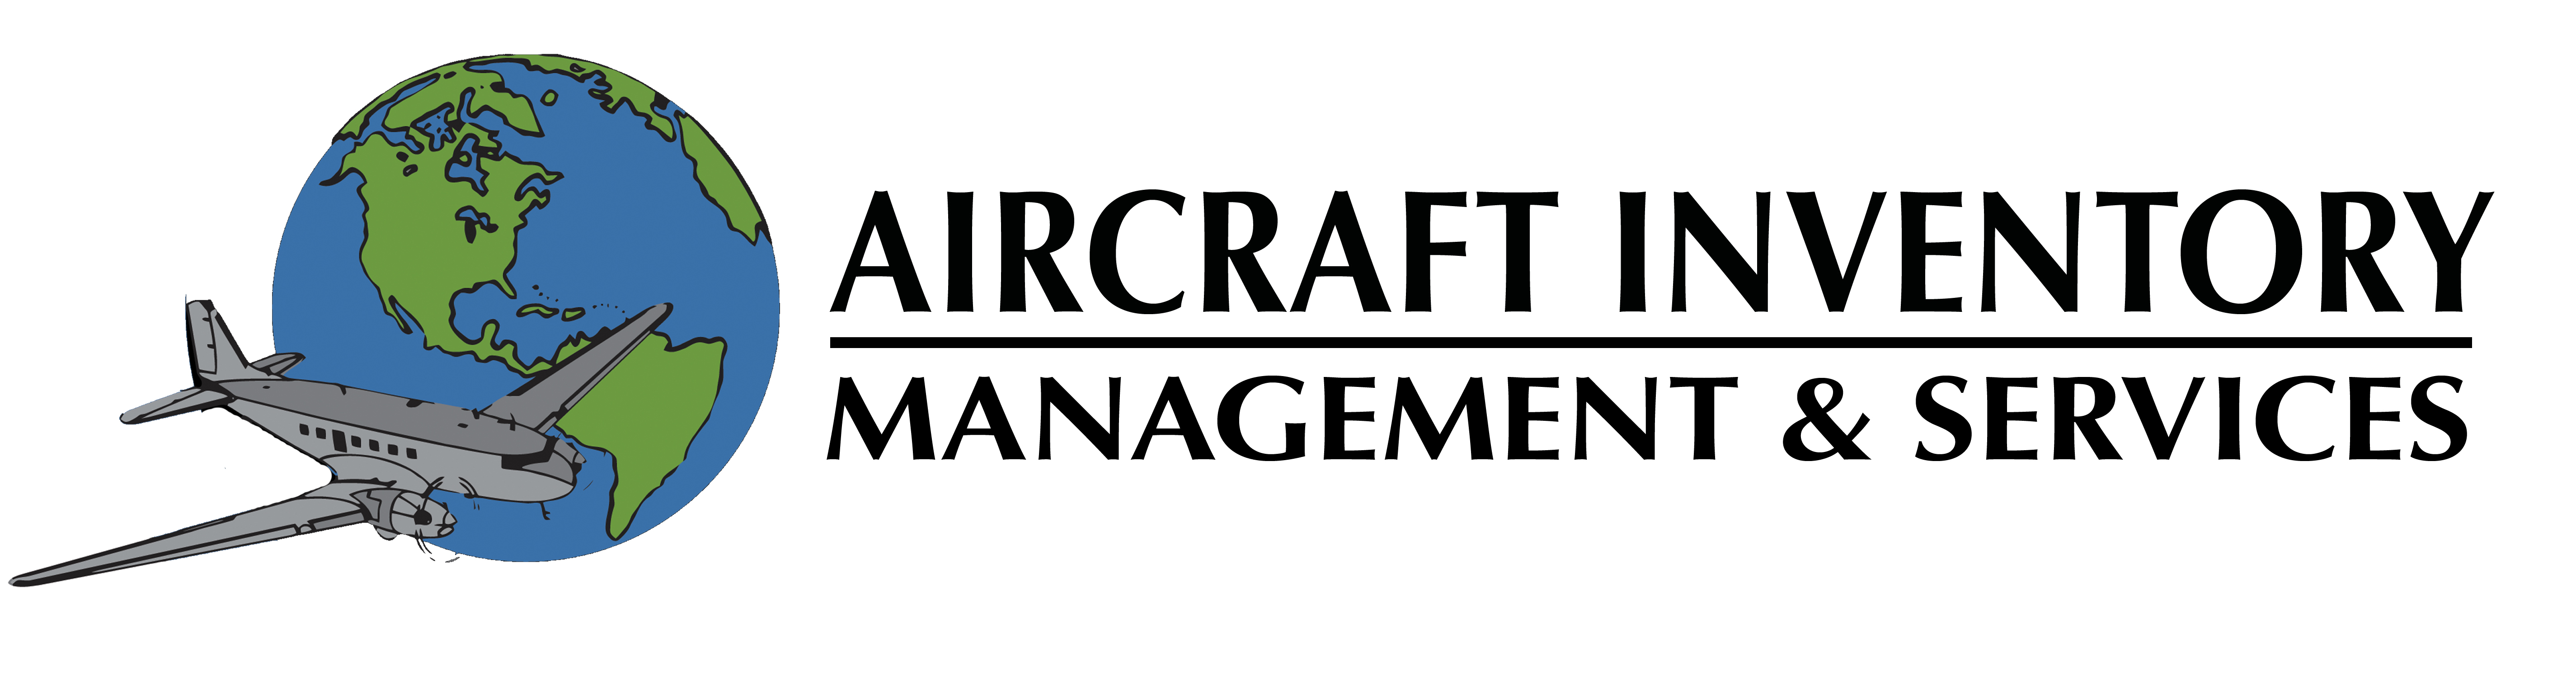 Aircraft Inventory Management & Services, Ltd.>